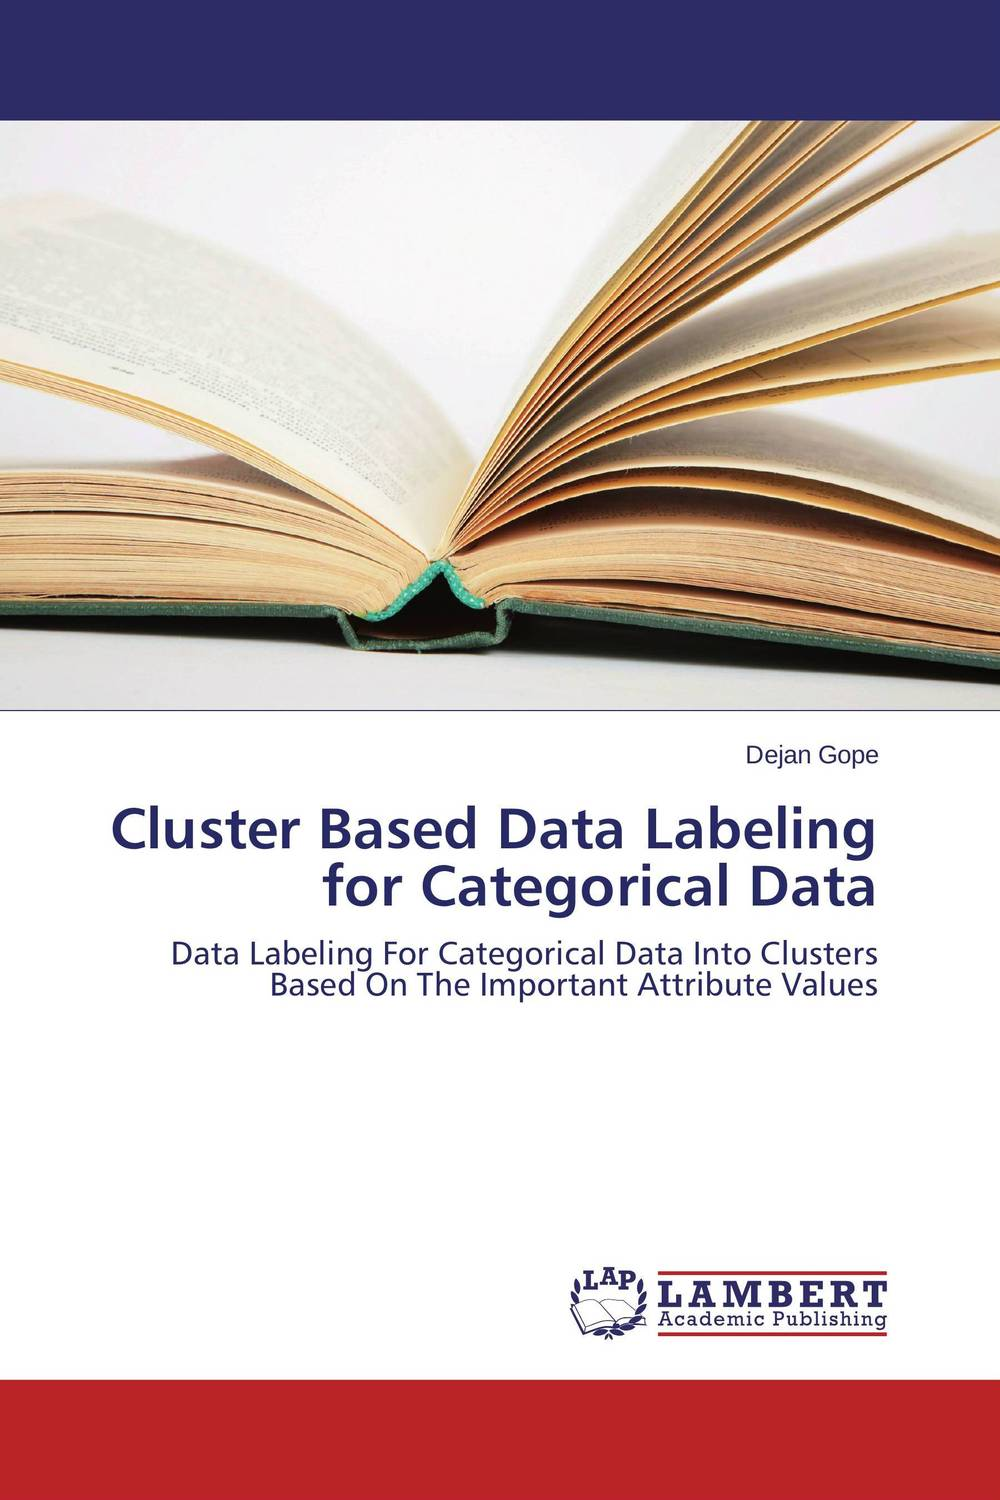 Cluster Based Data Labeling for Categorical Data cluster based data labeling for categorical data